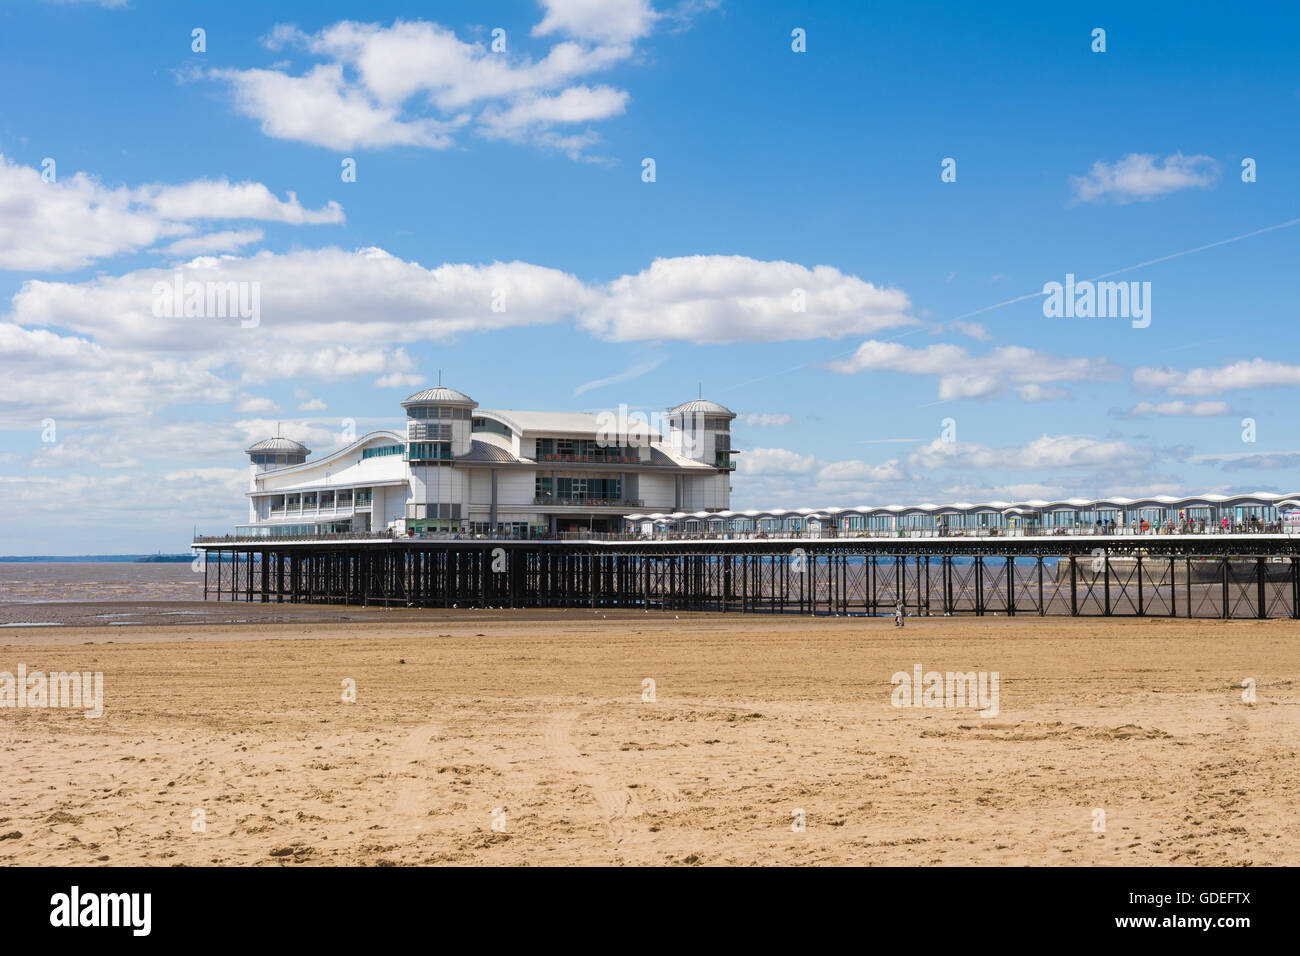 The Grand Pier at Weston-super-Mare Beach, North Somerset, England - Stock Image